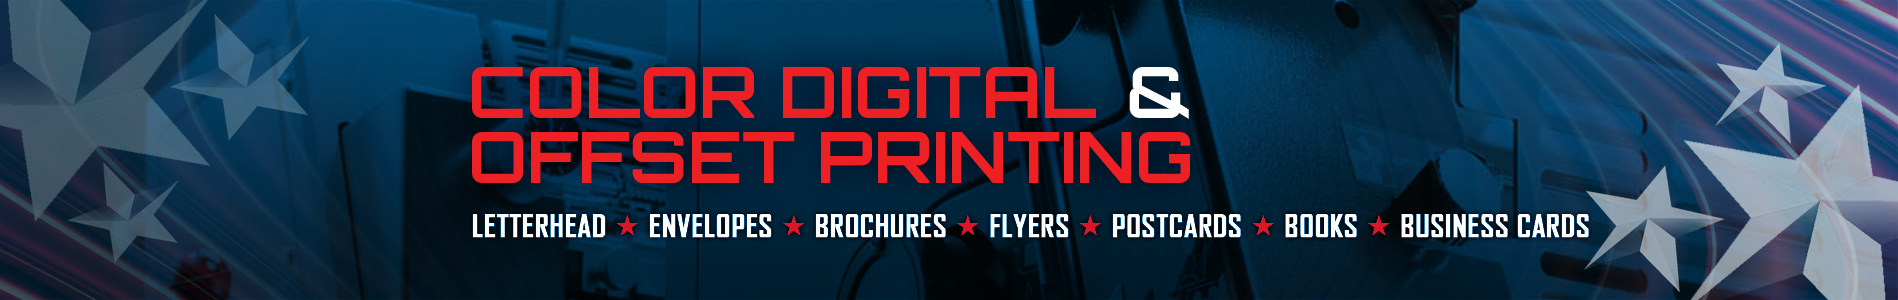 Digital Color Printing - Letterhead & Envelopes - Brochures - Flyers - Postcards - Books - Magazines